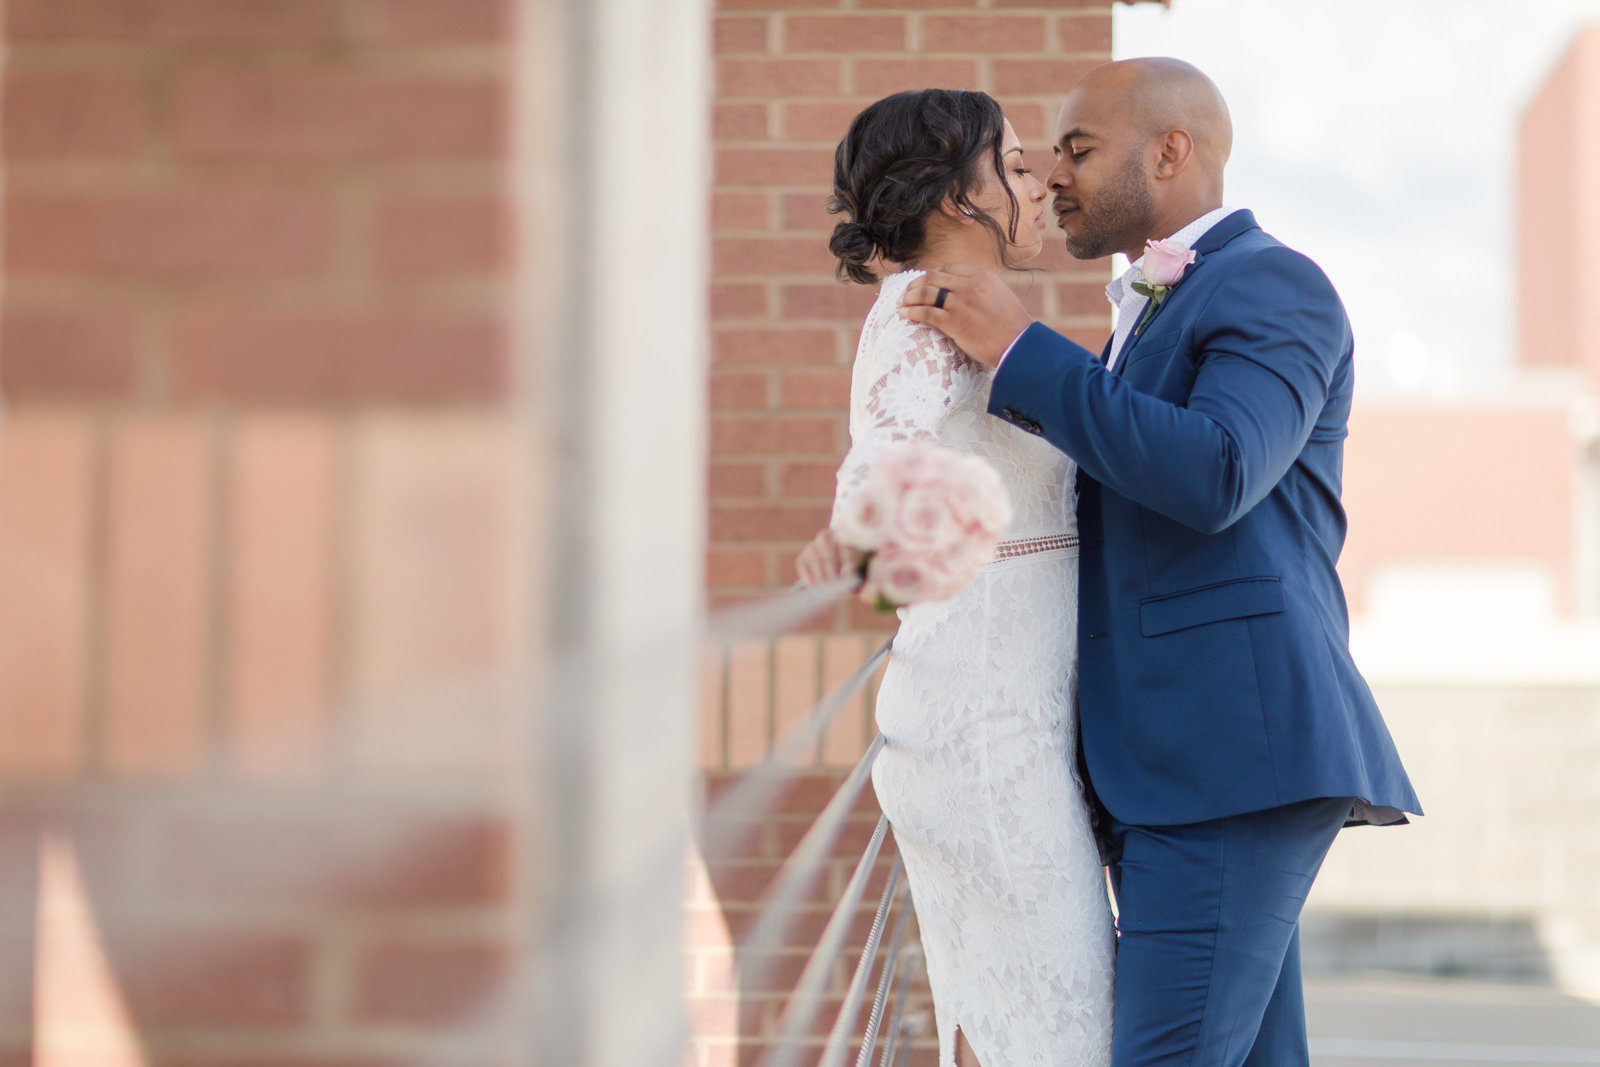 Sweet elopement downtown Fayetteville, NC